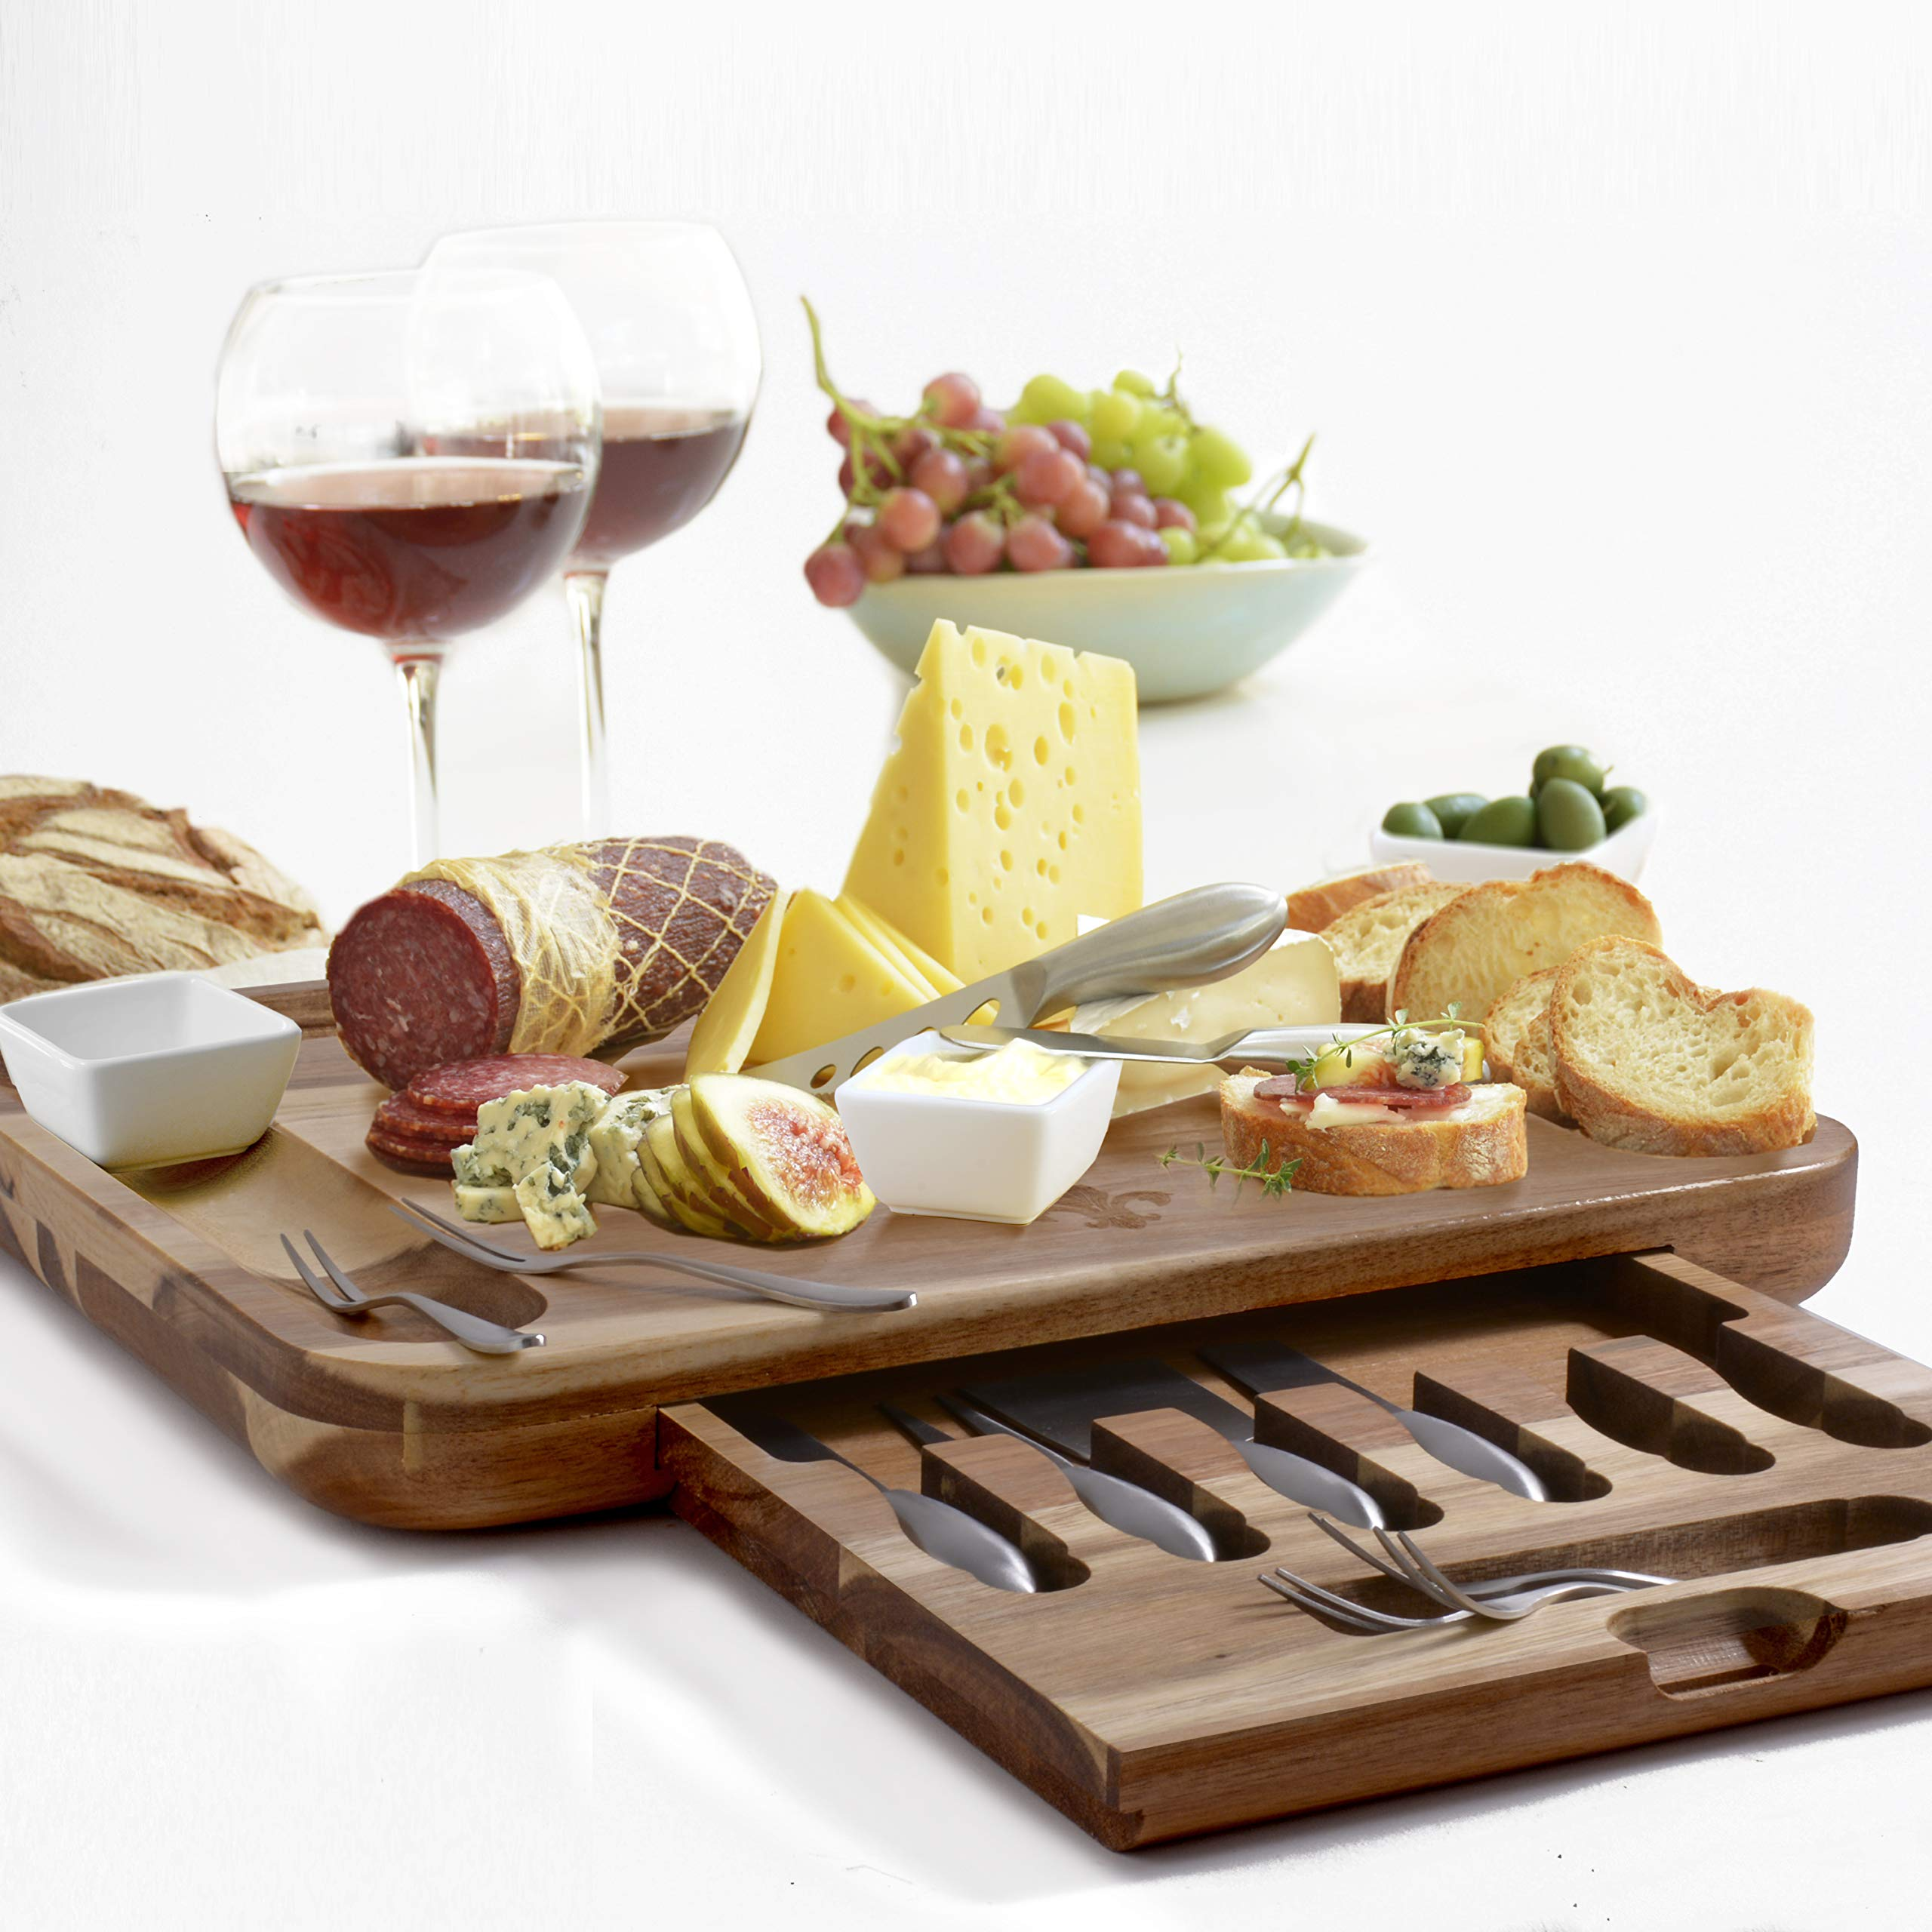 Exquisite Cheese Board & Utensils Gift Set - Extensive Serving Set -X- Large Bamboo Board & 6 Stainless Steel Cheese Knives & 6 Appetizer Forks & 3 Ceramic (Acacia, with ceramic dishes) by Elite Creations